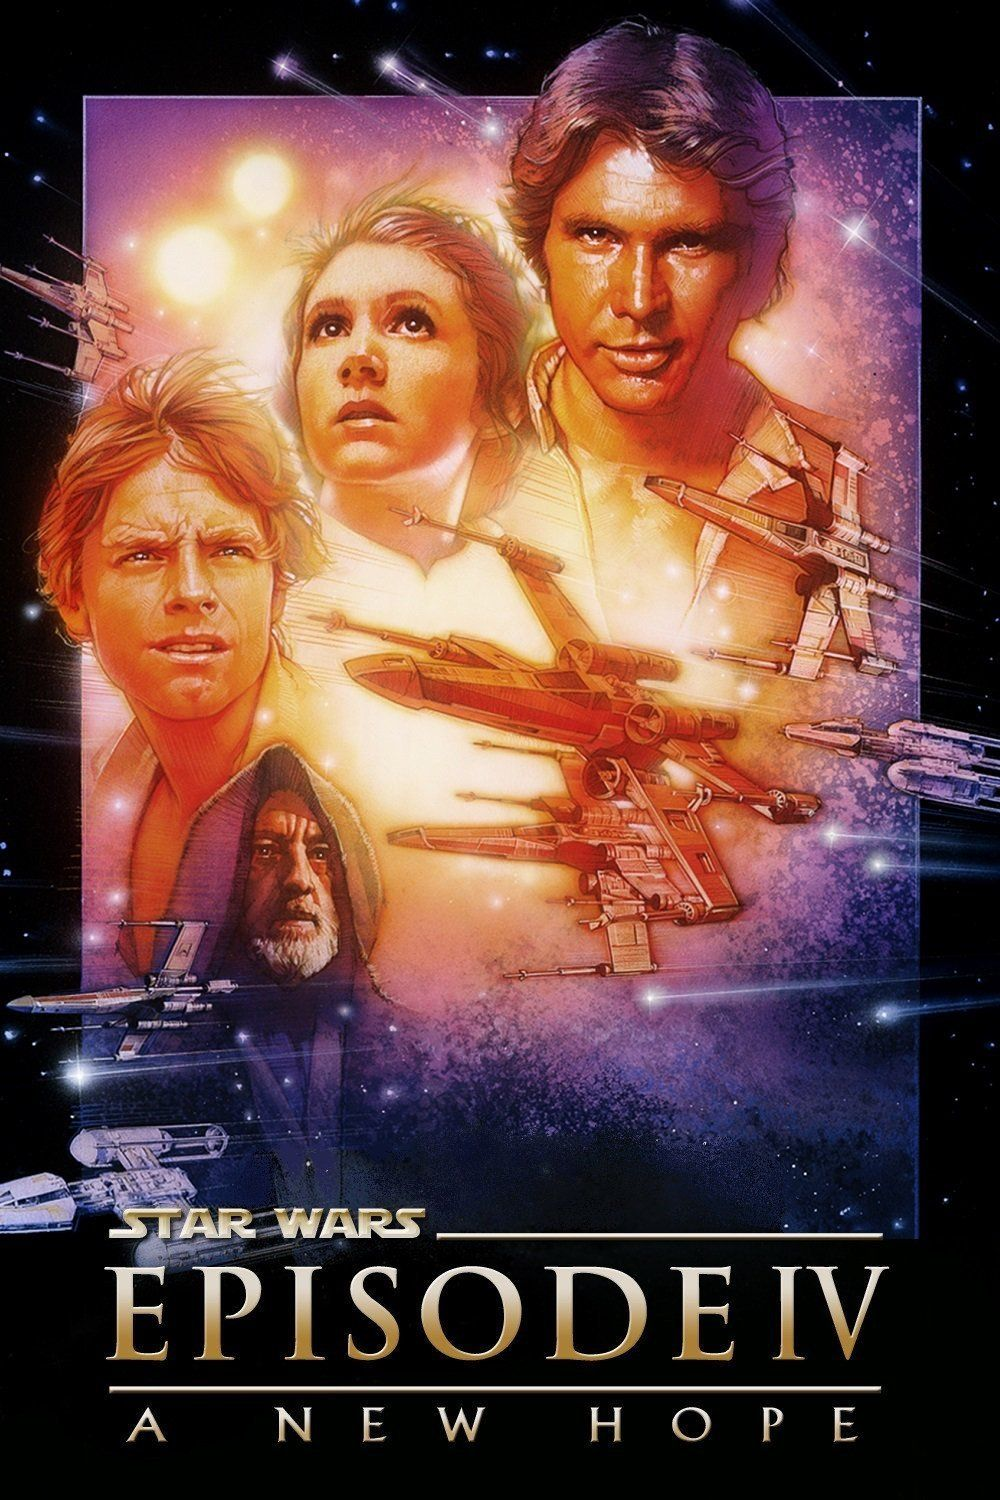 star wars 4 a new hope full movie free